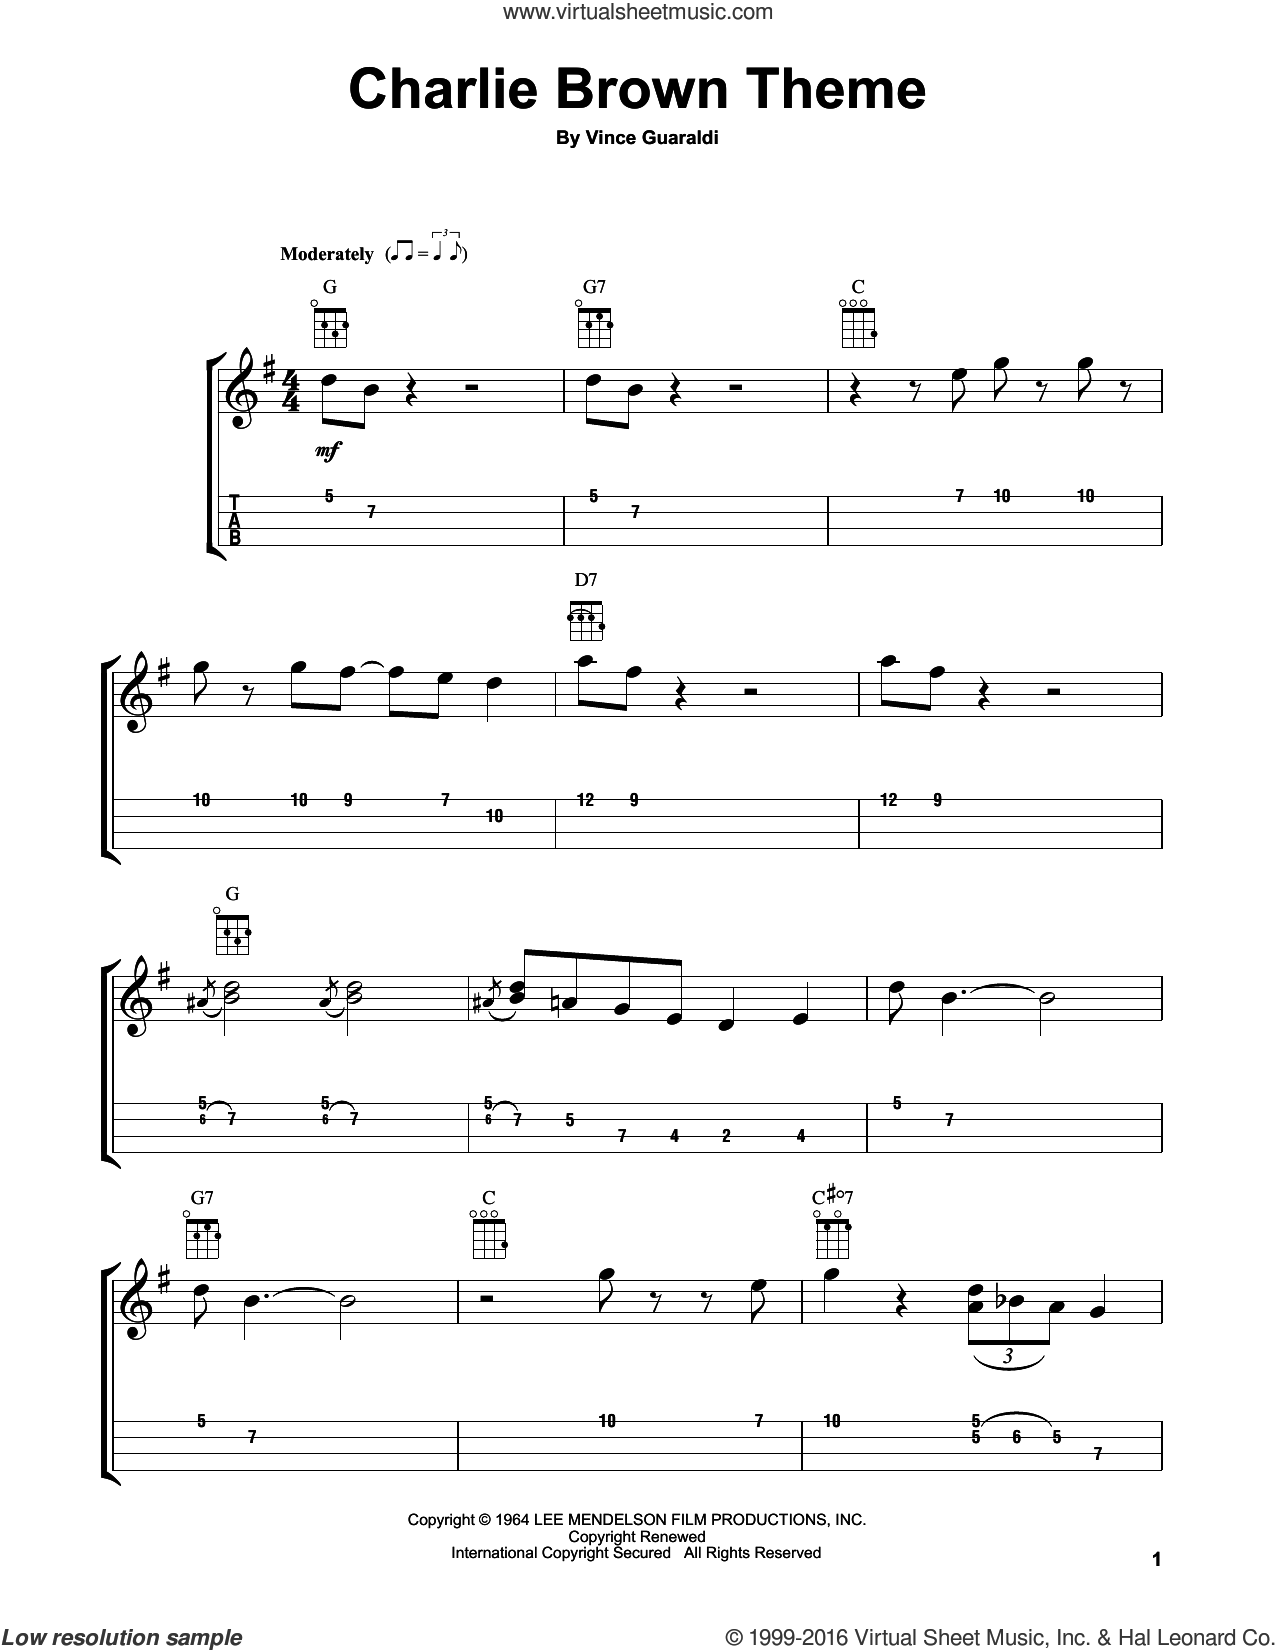 Charlie Brown Theme sheet music for ukulele by Vince Guaraldi